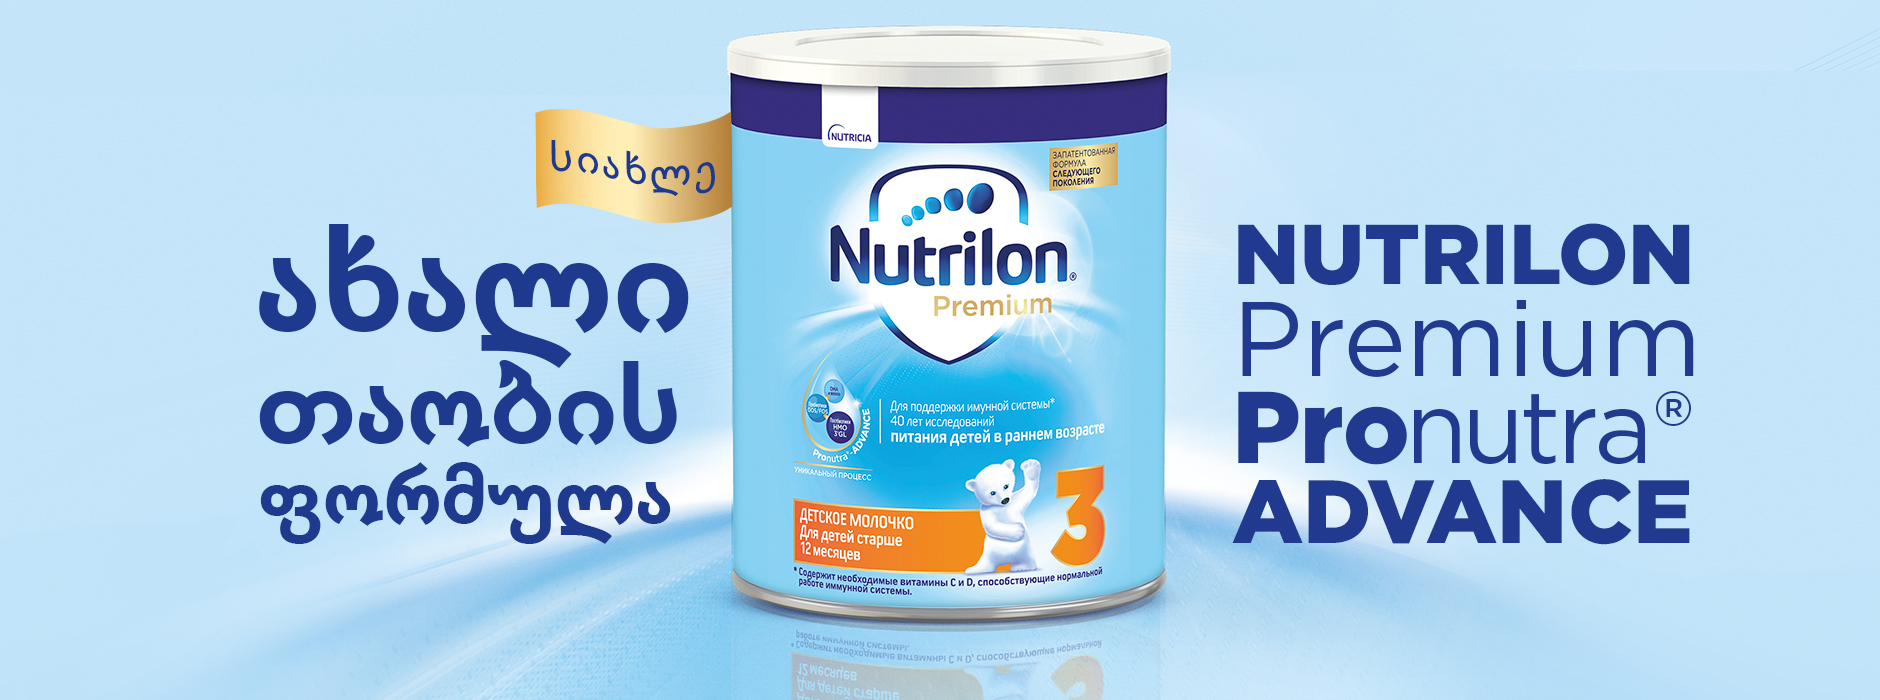 Next generation formula Aptamil pronutra® advance